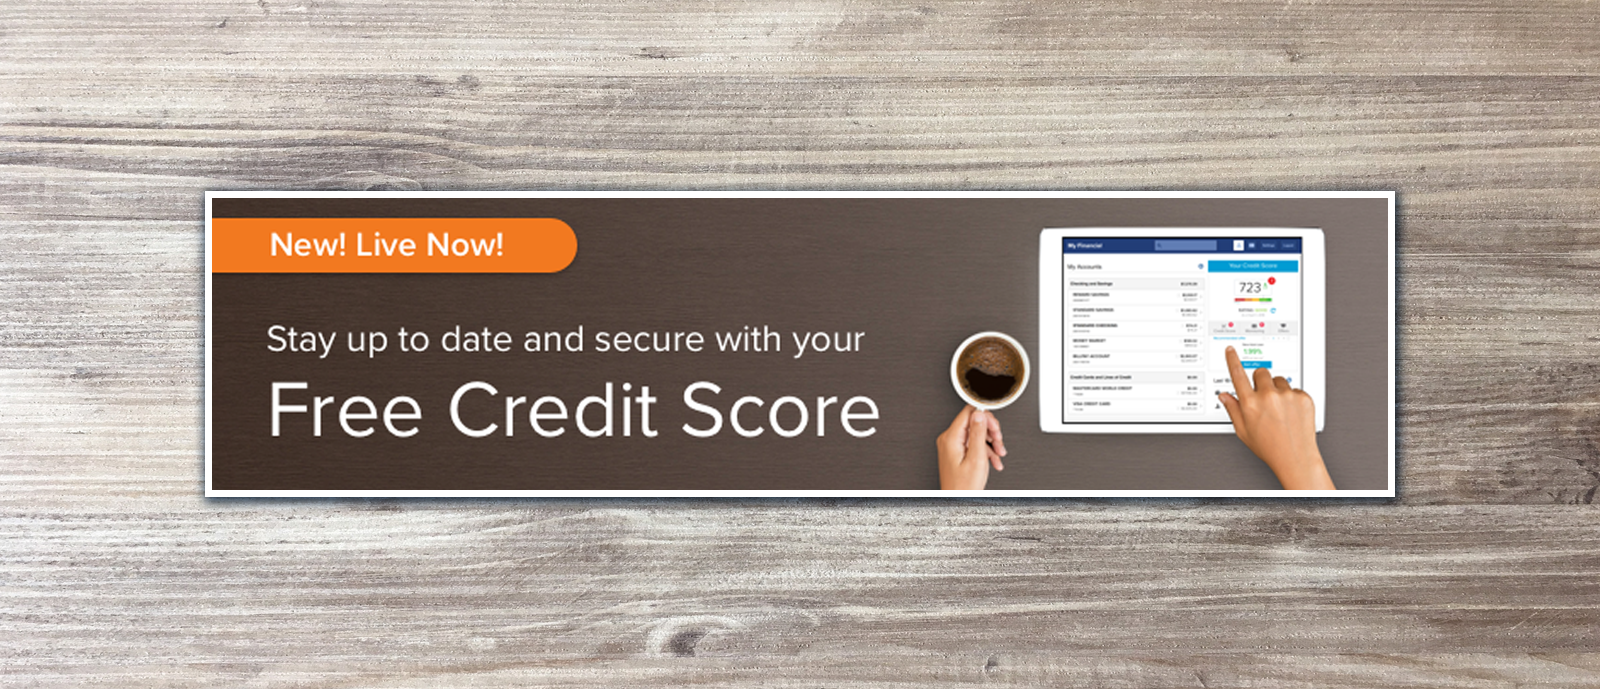 New! Live Now! Stay up to date and secure with your Free Credit Score.